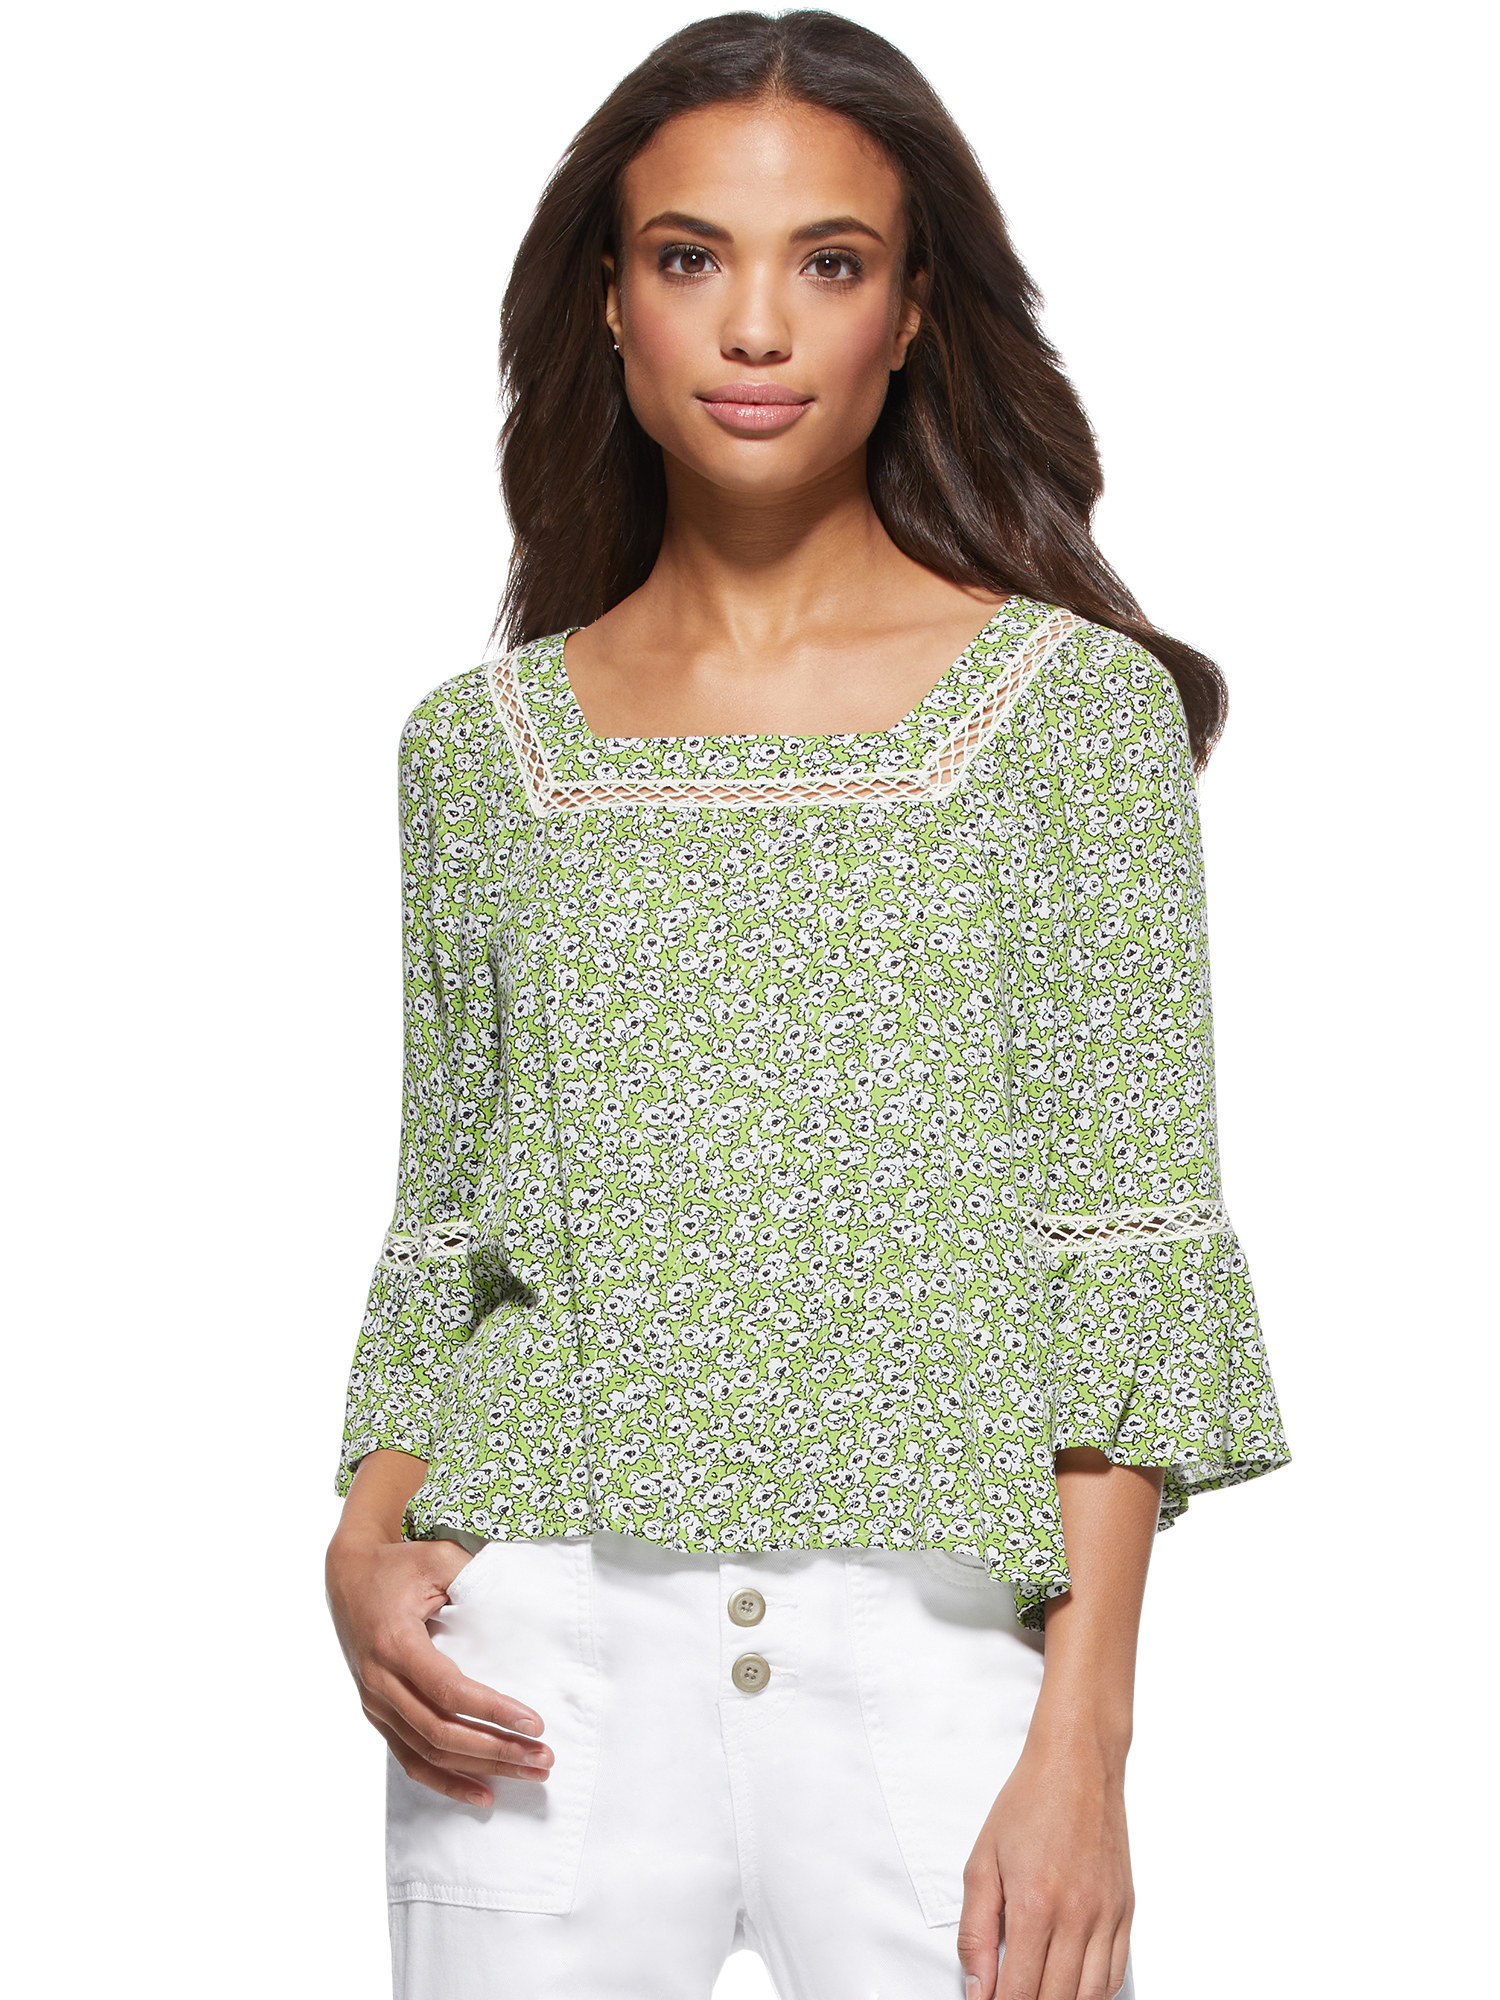 The green and white floral blouse